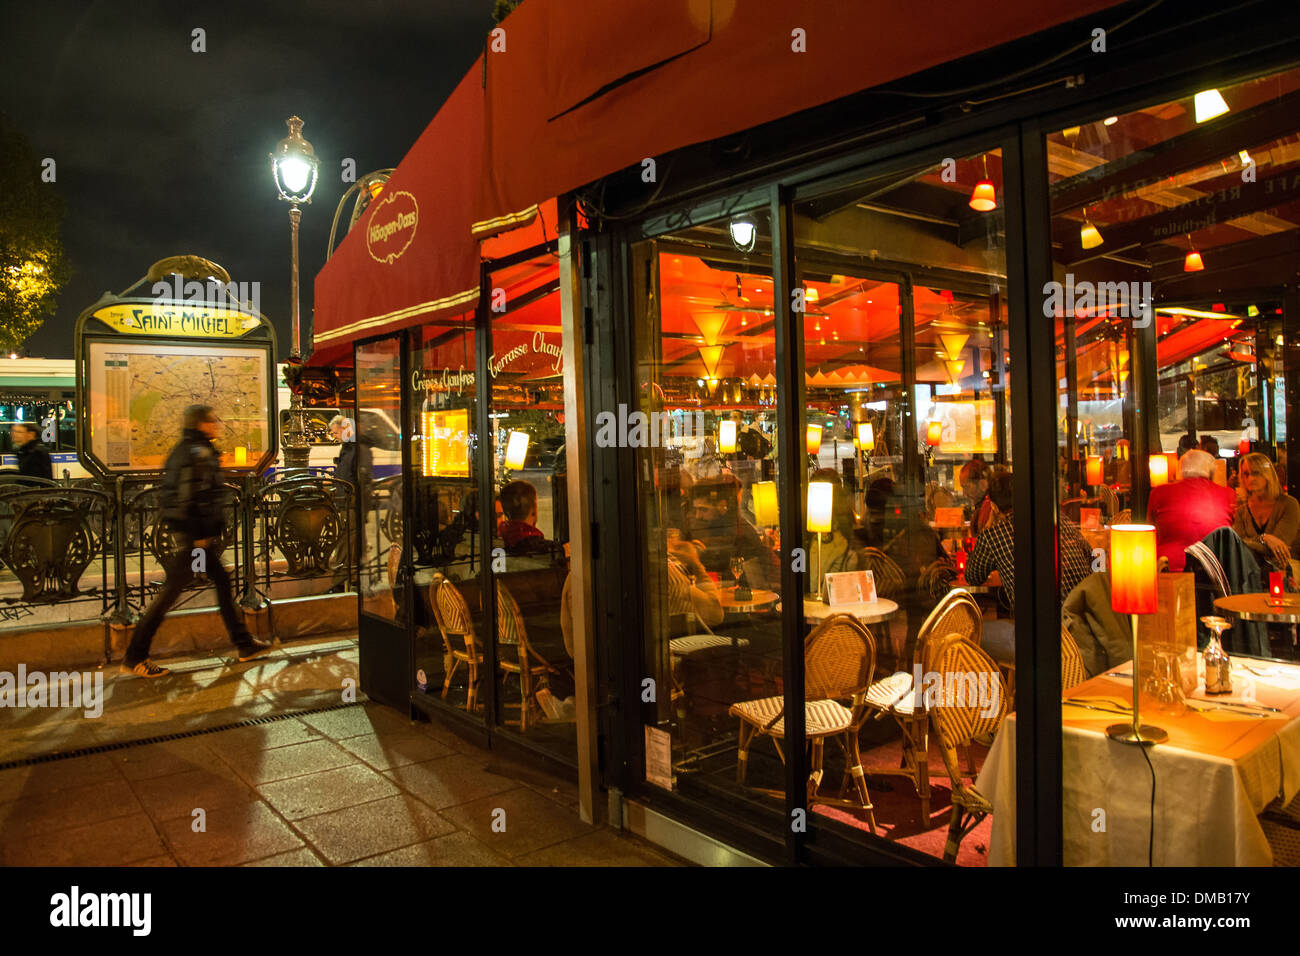 Lively nighttime ambiance cafe le depart saint michel and - Saint michel paris metro ...